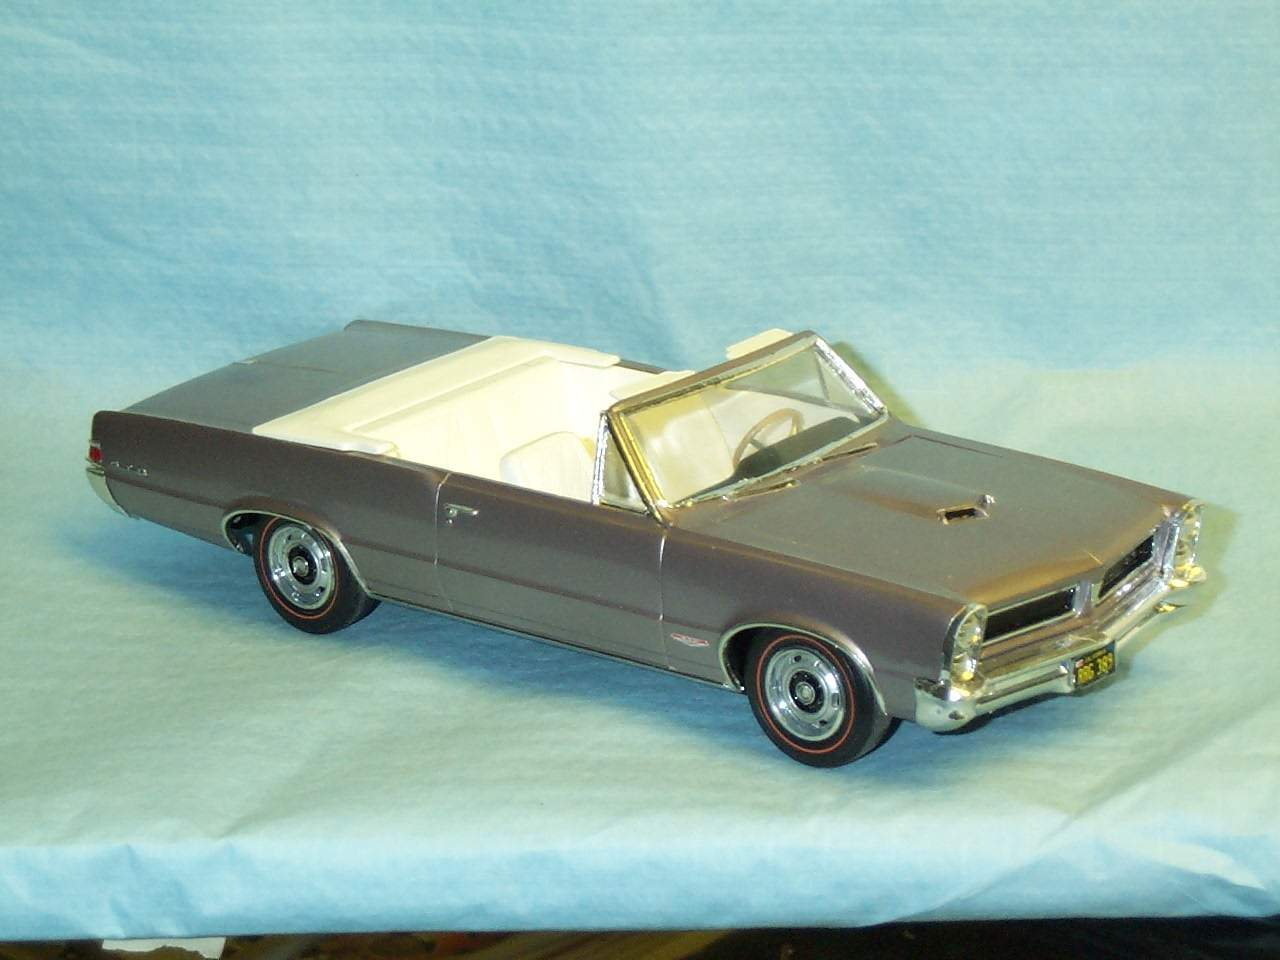 65 GTO convertible Original first issue kit restored from a poor build up. Wheels tires from new 66 GTO. Done in factory Iris Mist Metallic (very rare color on the real car)